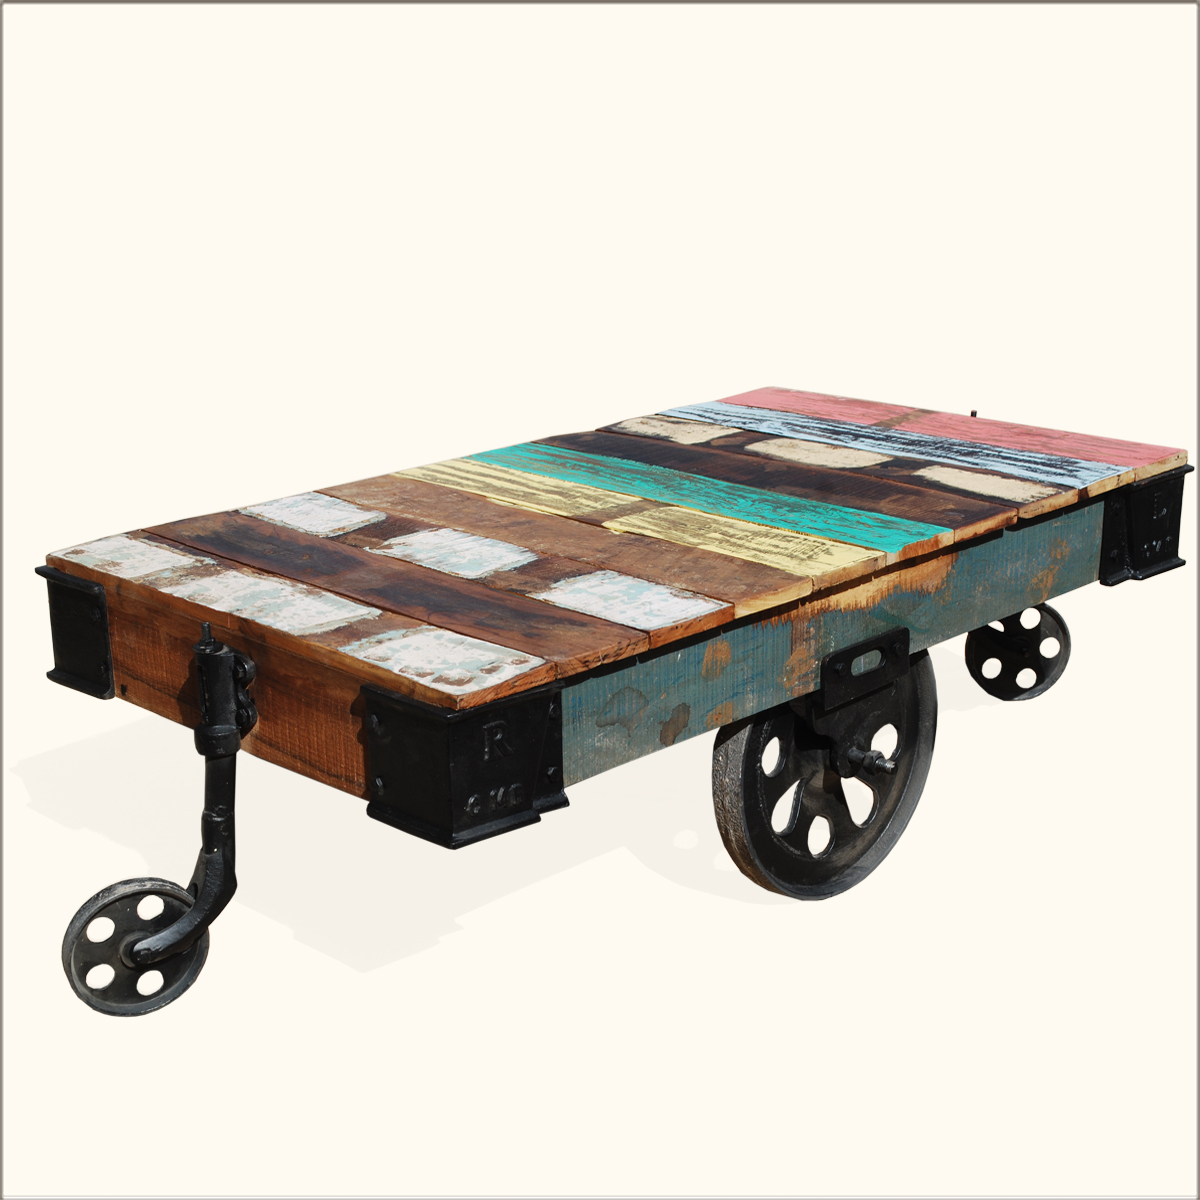 Rustic wood rolling factory cart industrial coffee table for Coffee tables on wheels